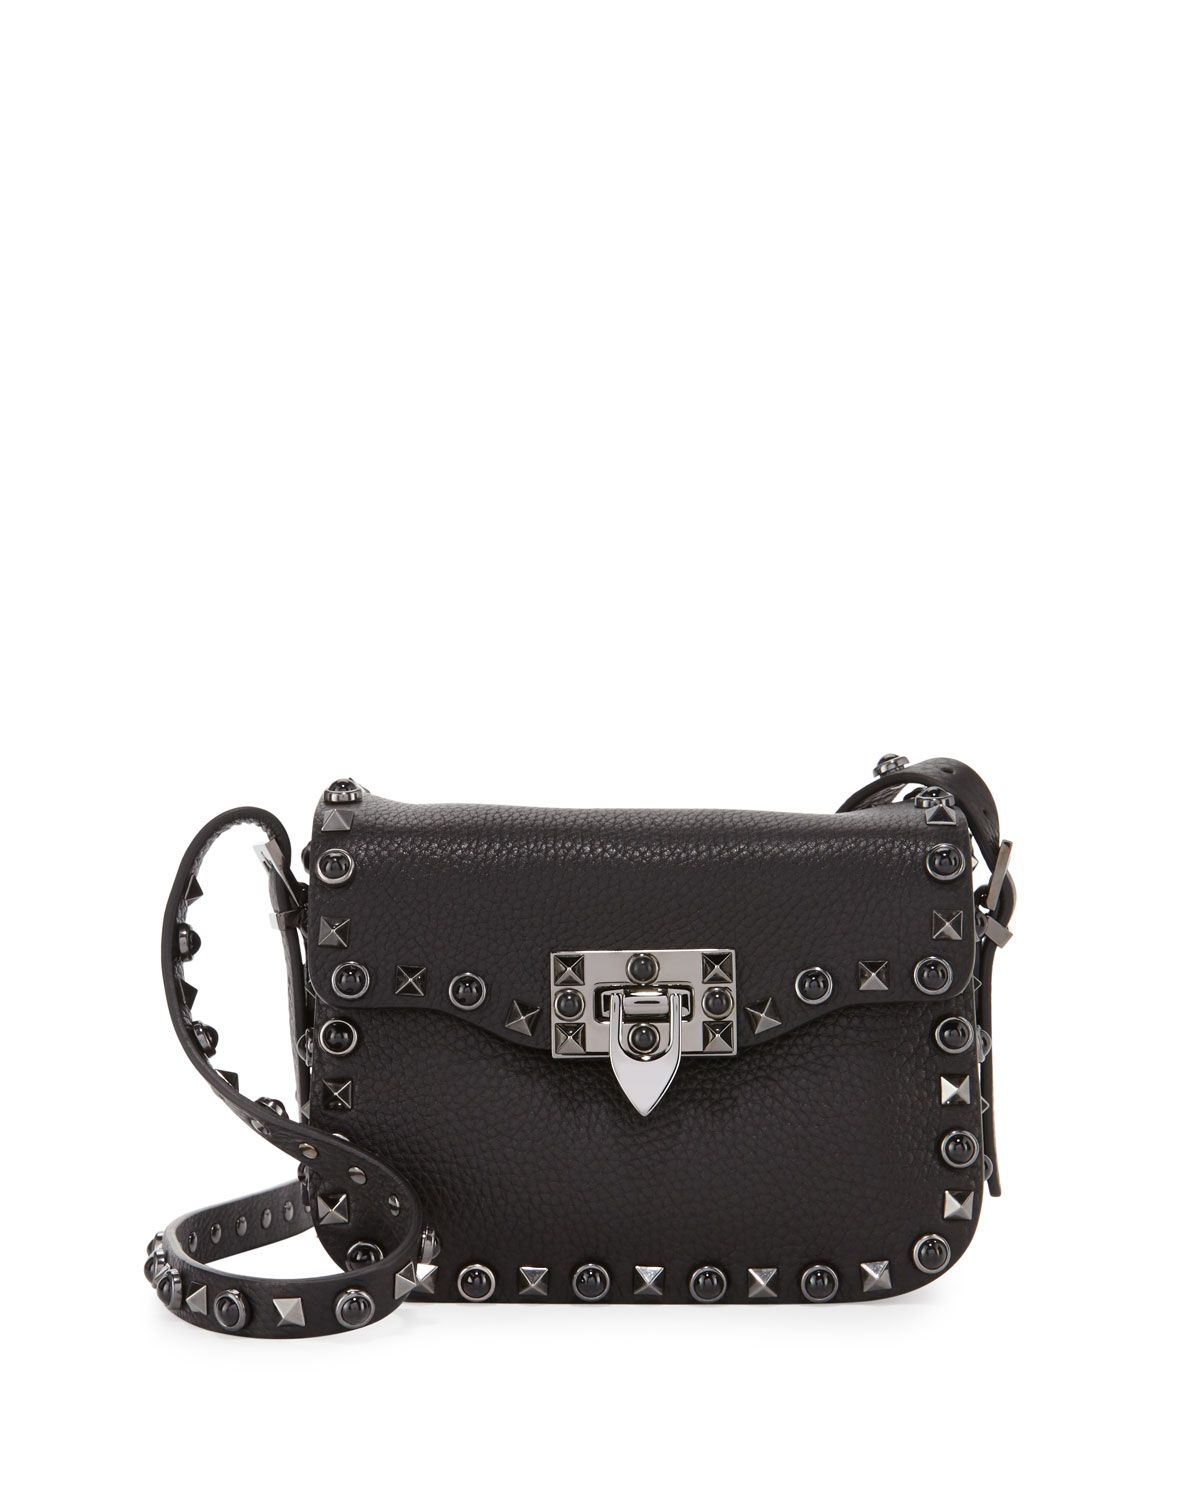 e218ff710581 Rockstud Rolling Noir Medium Shoulder Bag Black | Fashion | Bags ...